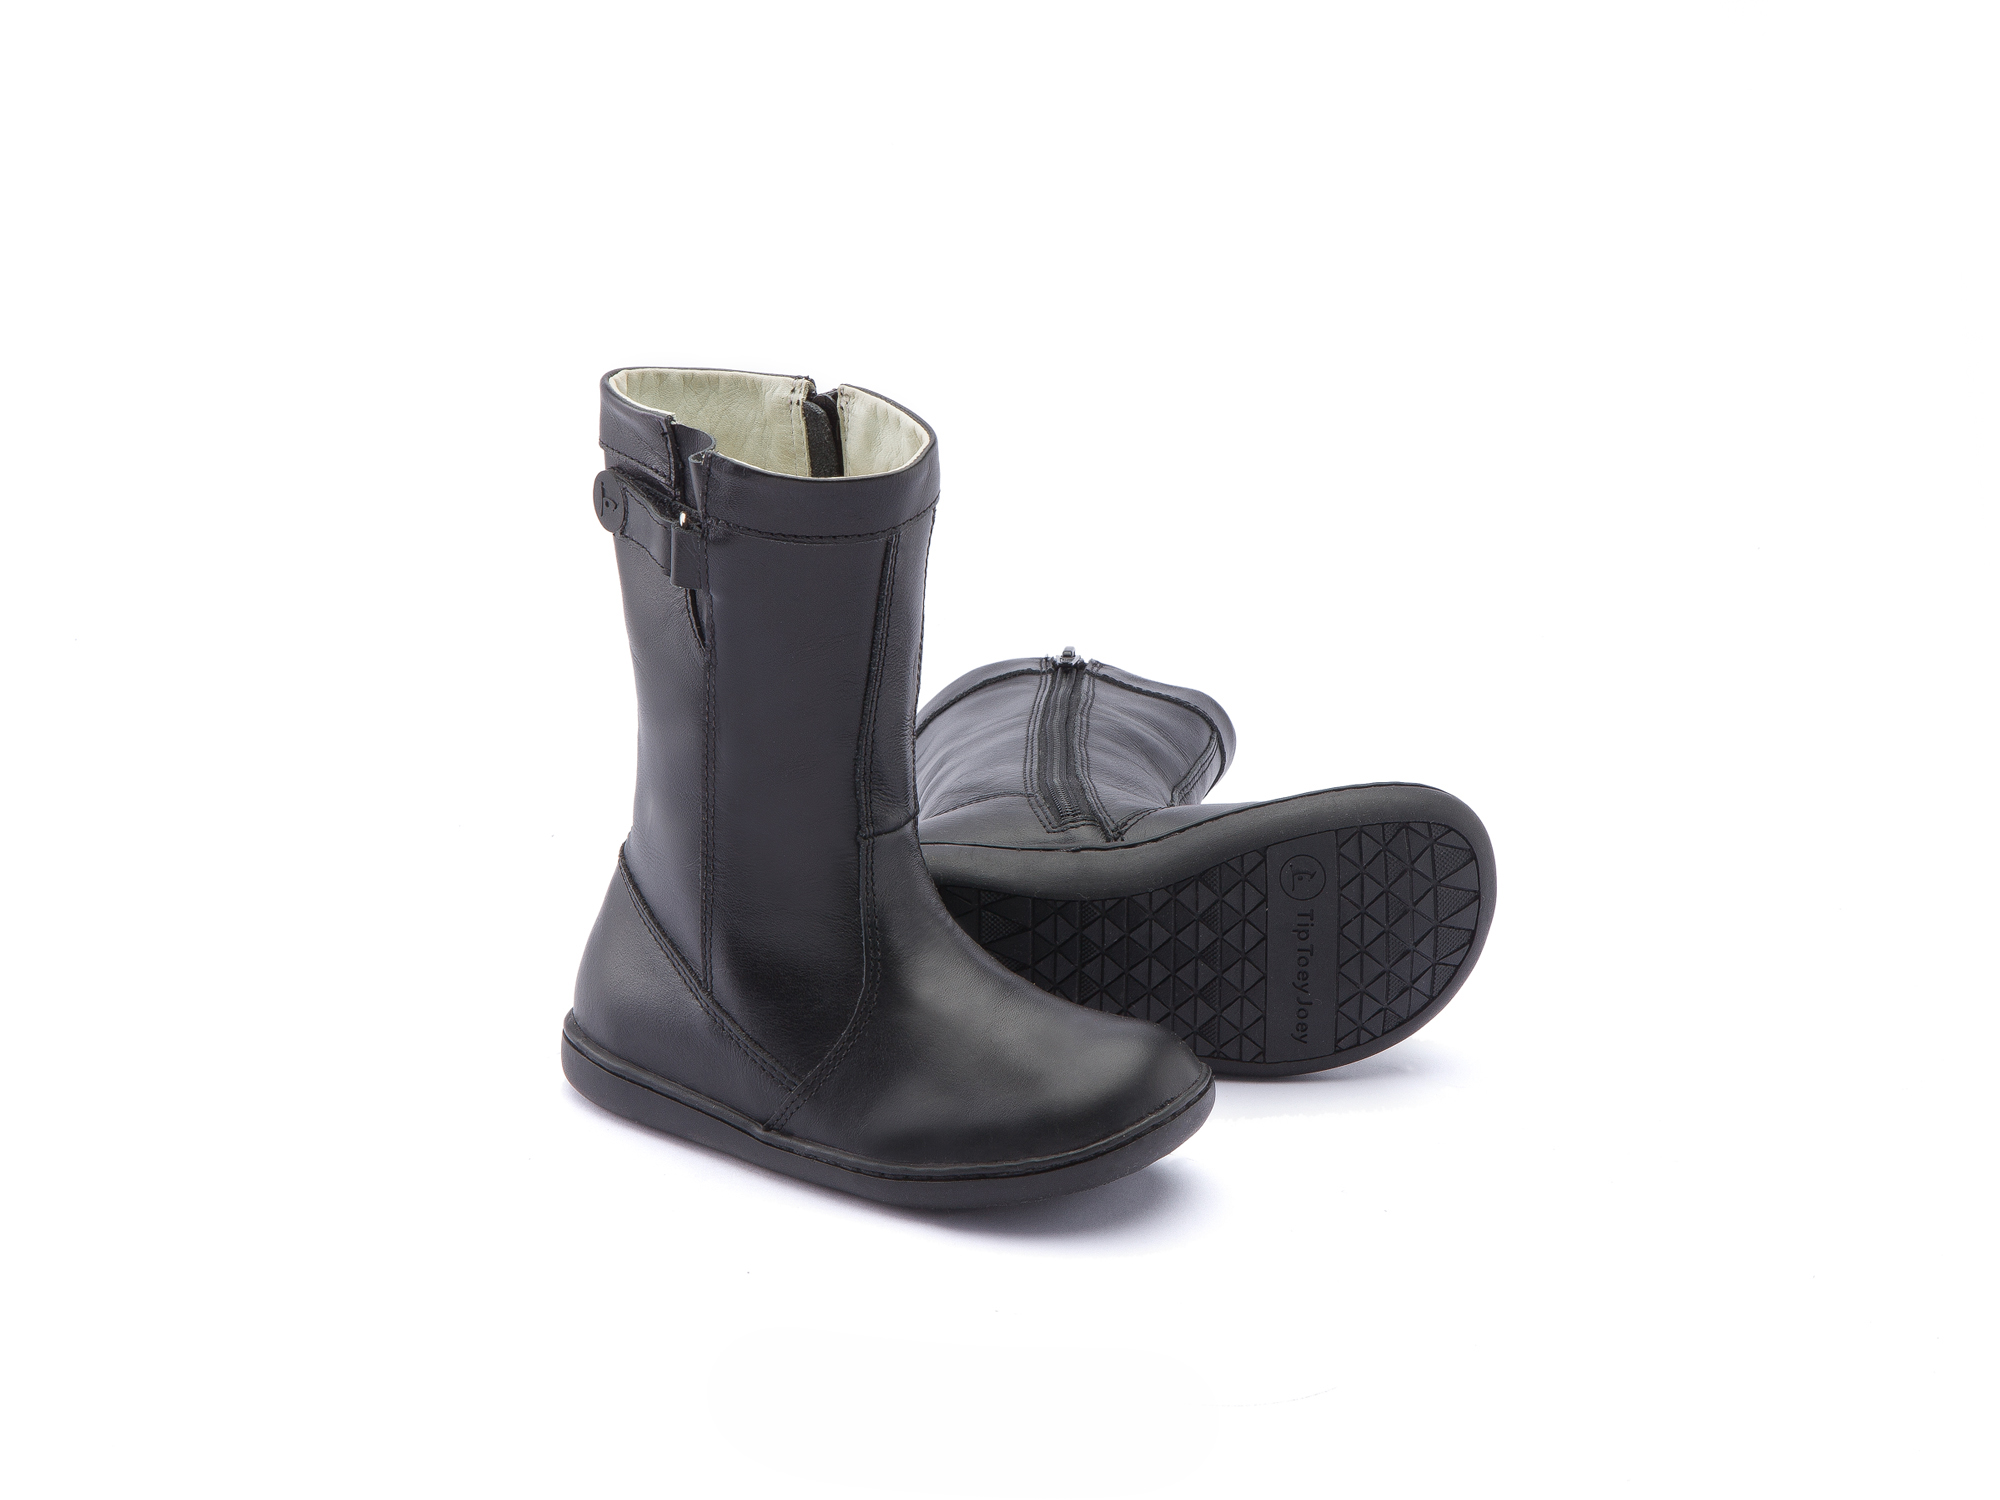 Bota Little Cold Black Toscana  Toddler 2 à 4 anos - 2